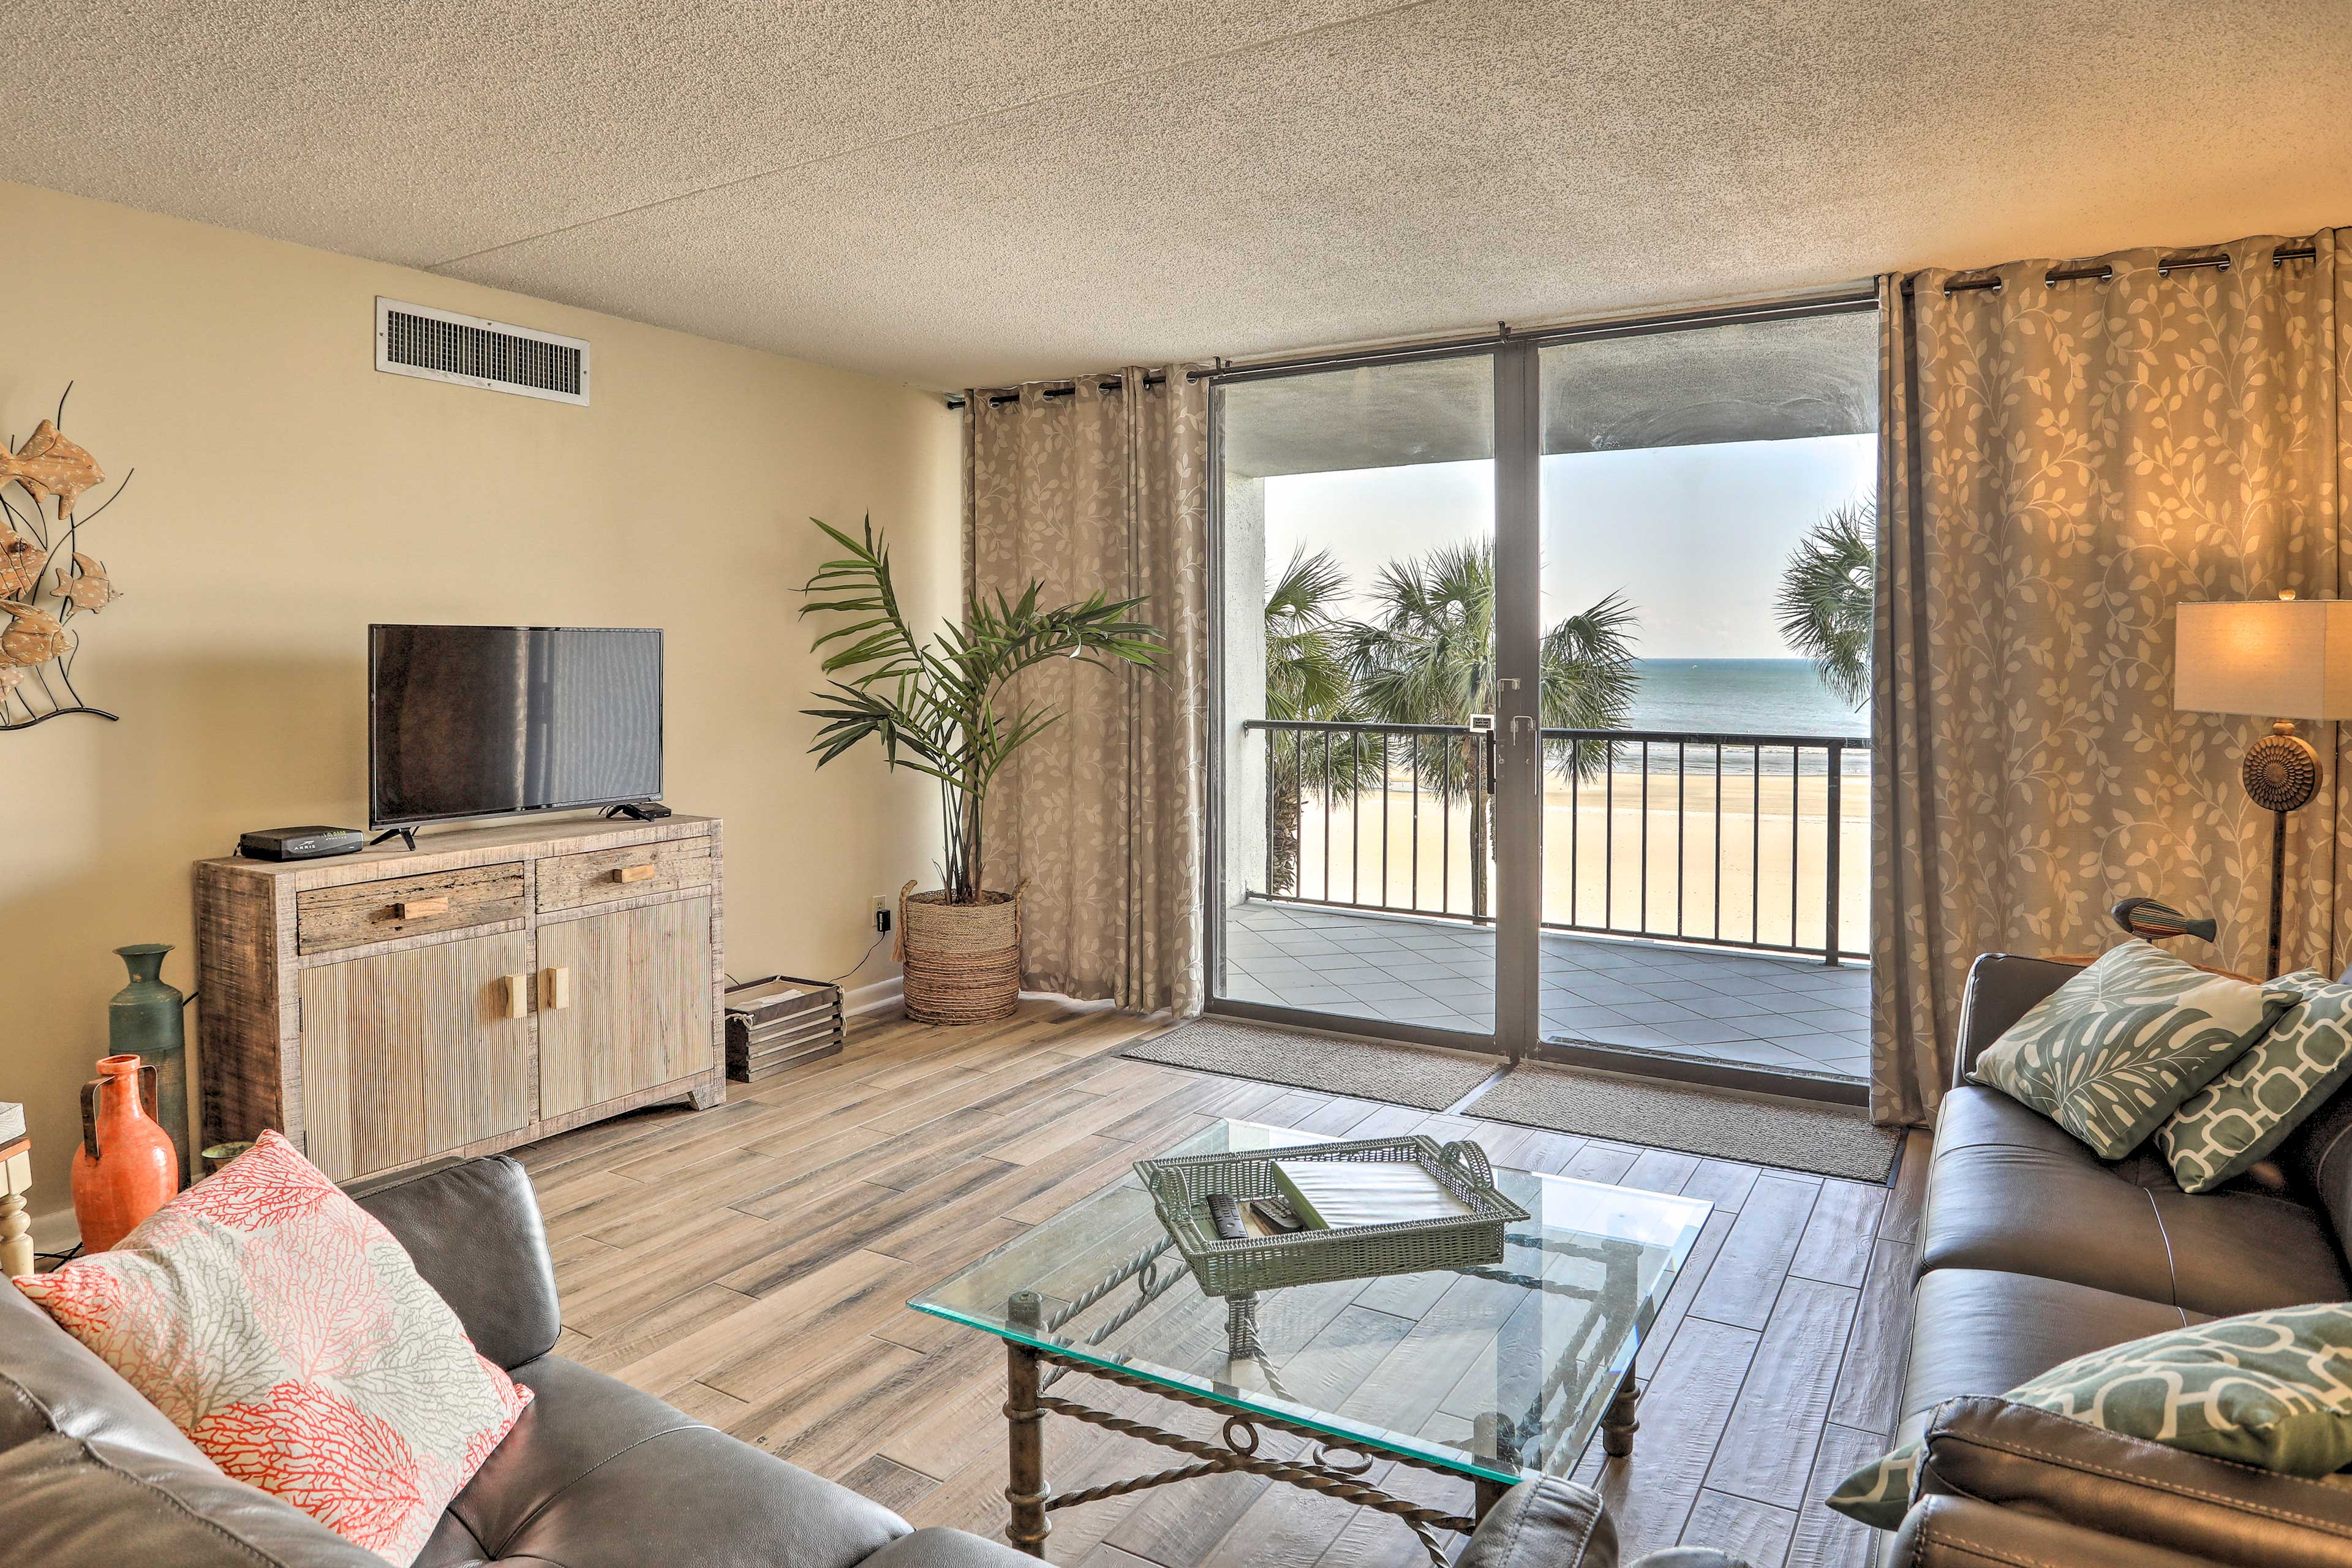 Ocean views flourish throughout the vacation rental's light and airy interior.